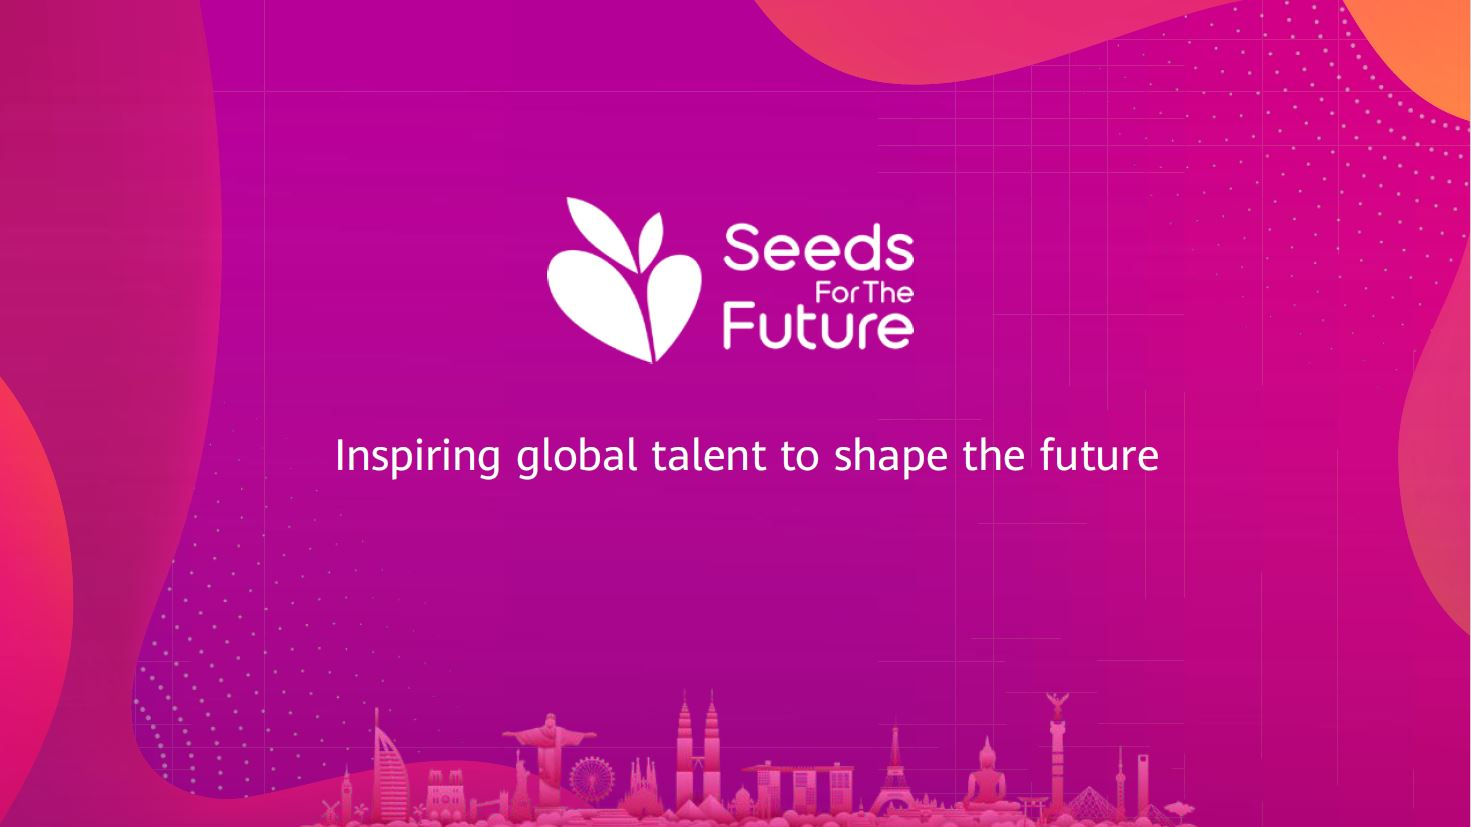 Huawei seeds for the future Nepal